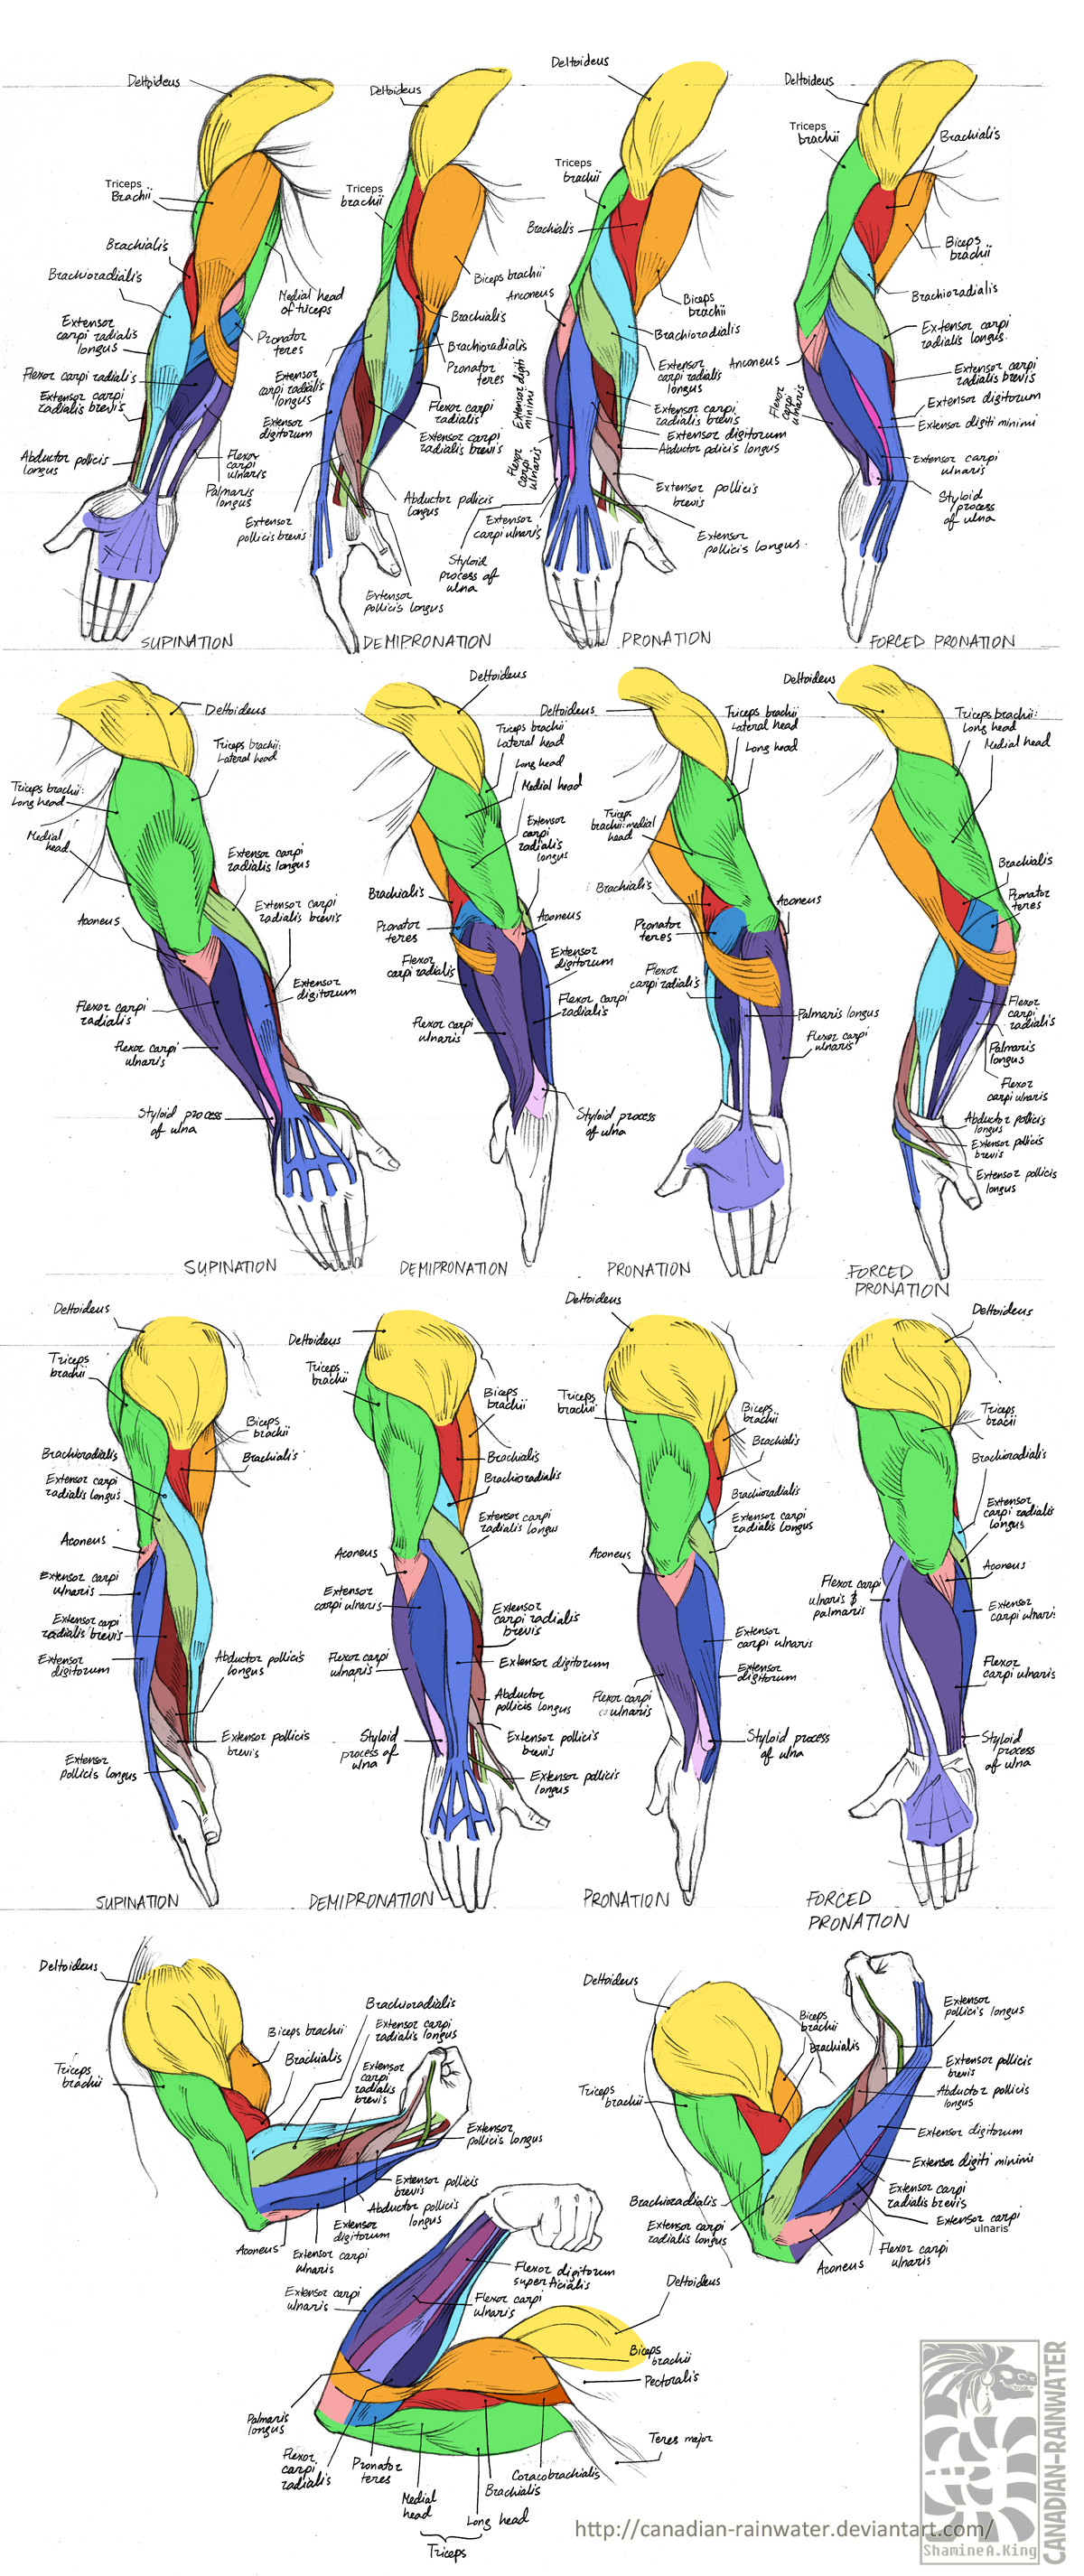 anatomy - human arm muscles by quarter-virus on deviantart, Muscles